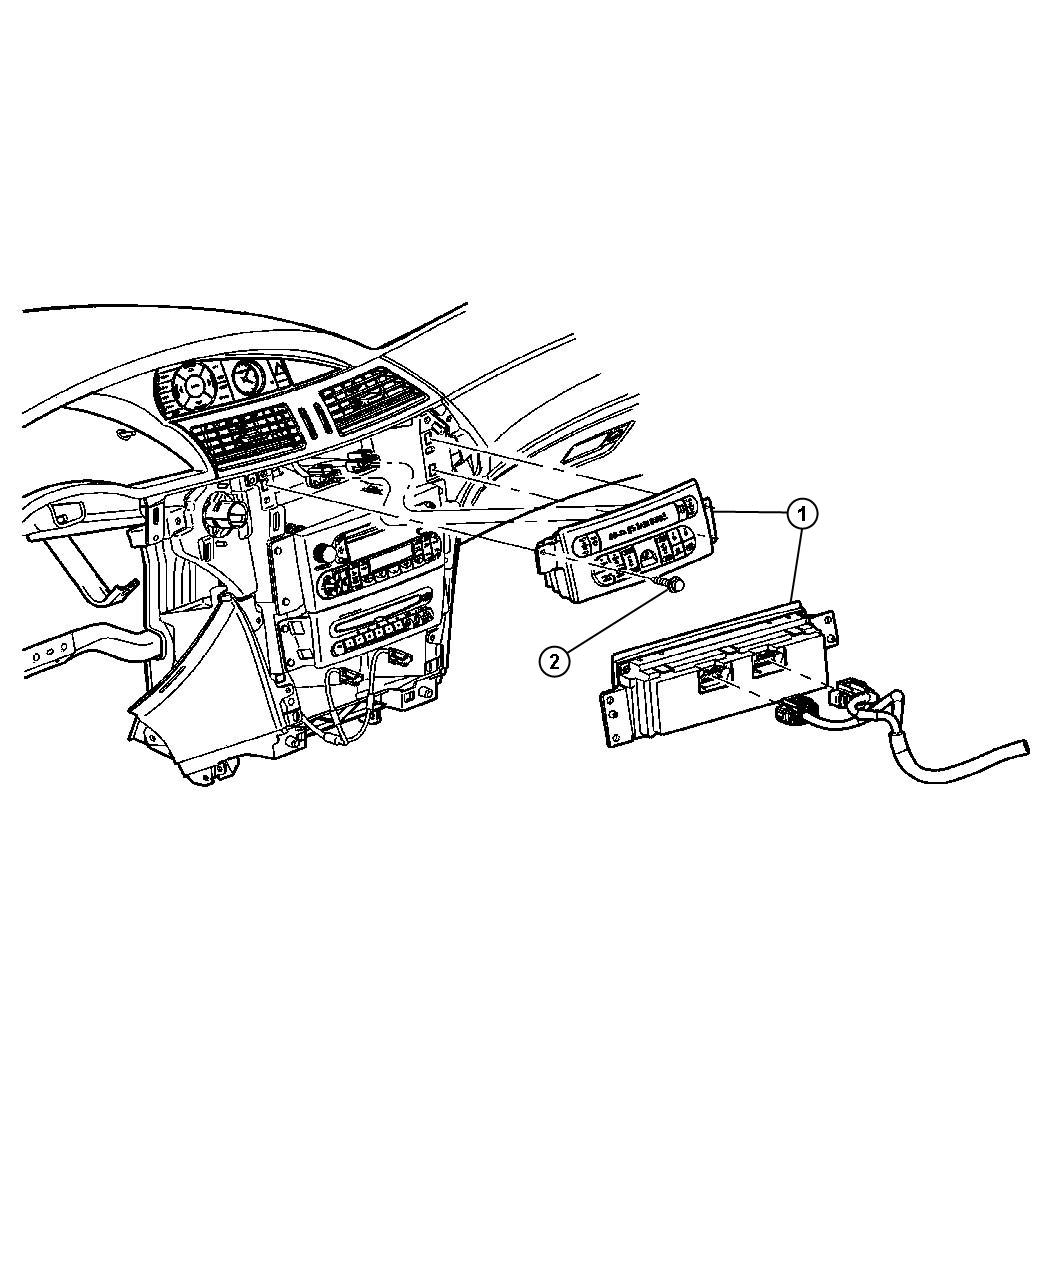 Wiring Diagram For 2008 Chrysler Pacifica